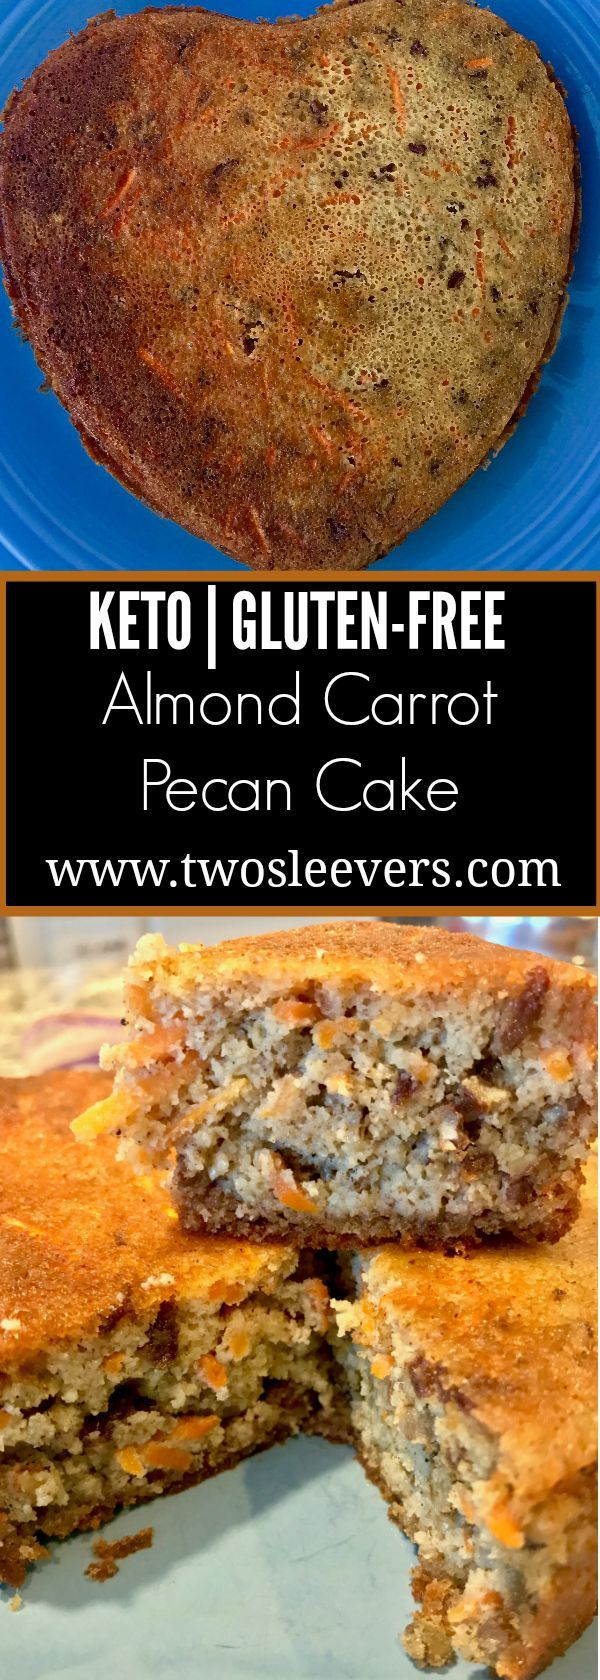 My best cake recipe. Keto Gluten-Free Almond Carrot Cake , Easy, gluten-free, keto, almond carrot cake. Dump and mix, and bake and this will be the best cake you've ever had.  #GlutenFree, #LowCarb, #Paleo, #SoftFoods, #Vegetarian